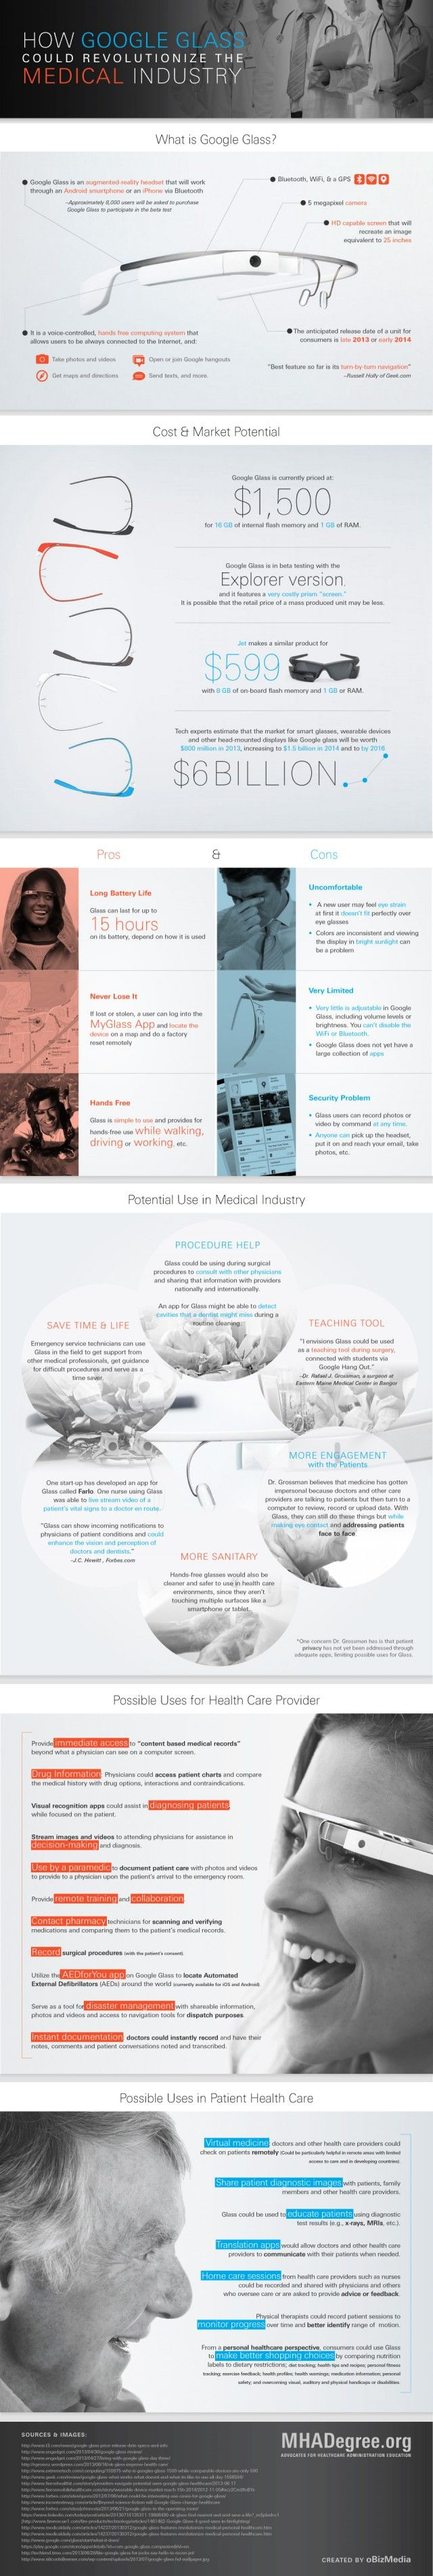 How Google Glass Could Revolutionize the Medical Industry [#infographic]